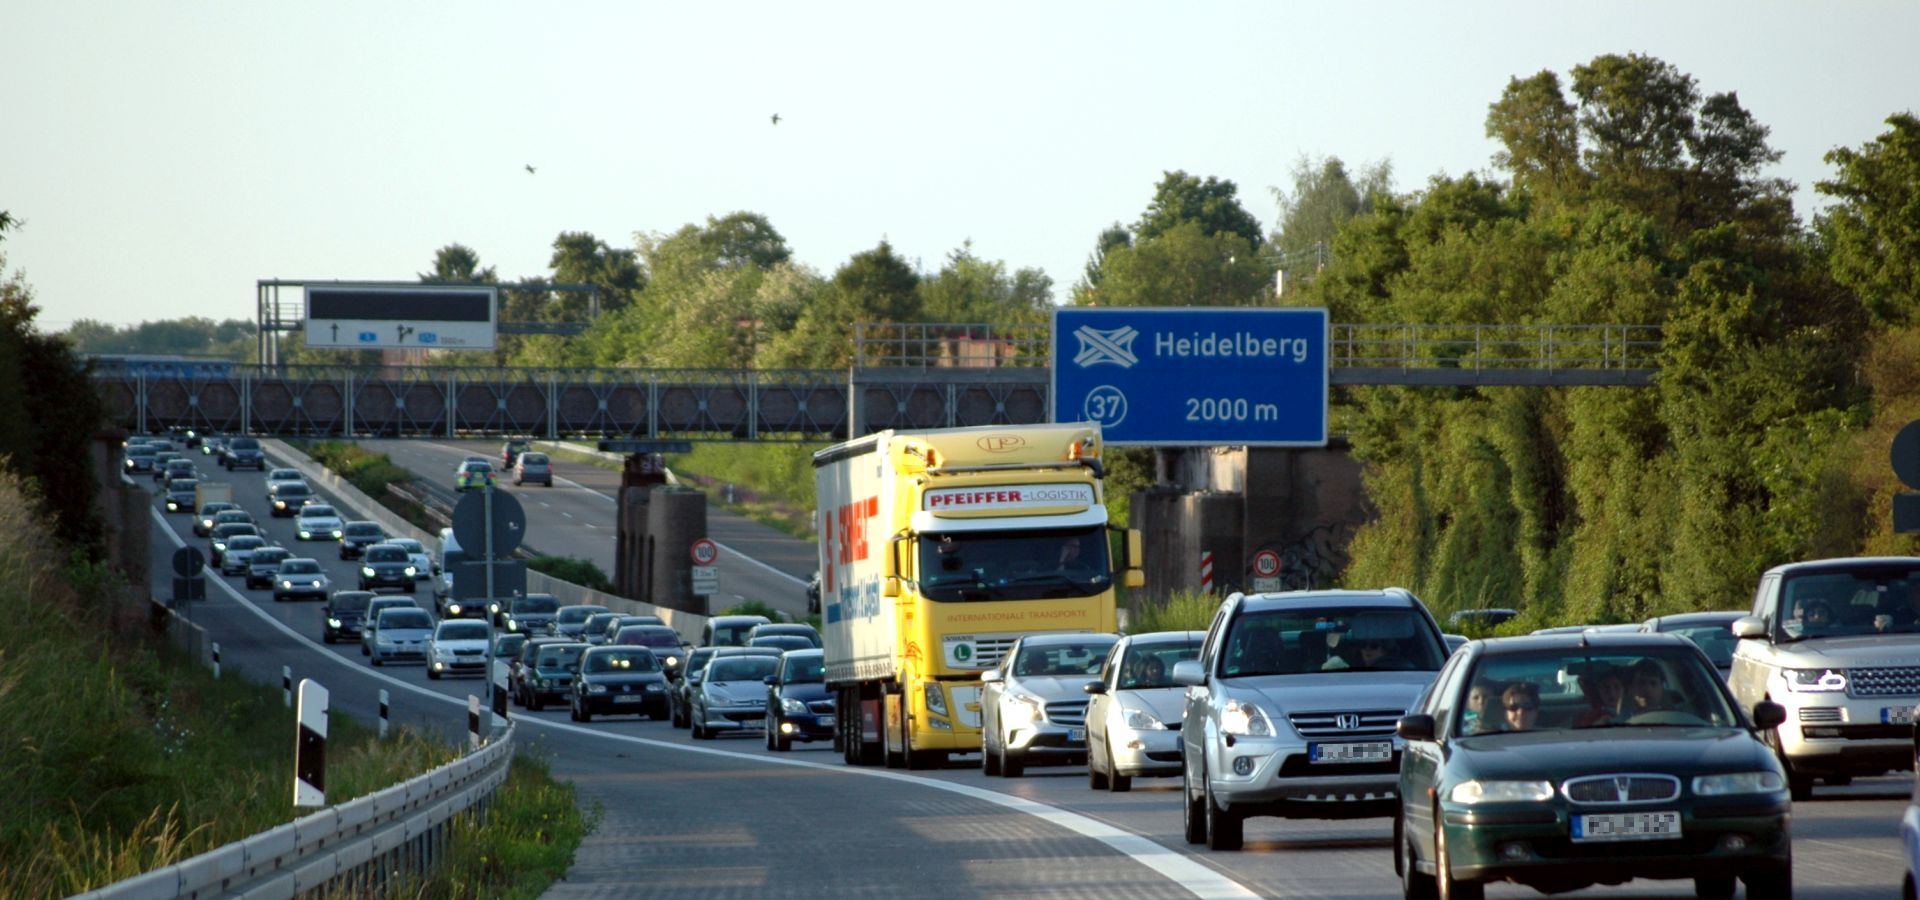 Traffic jam on a freeway in Germany.